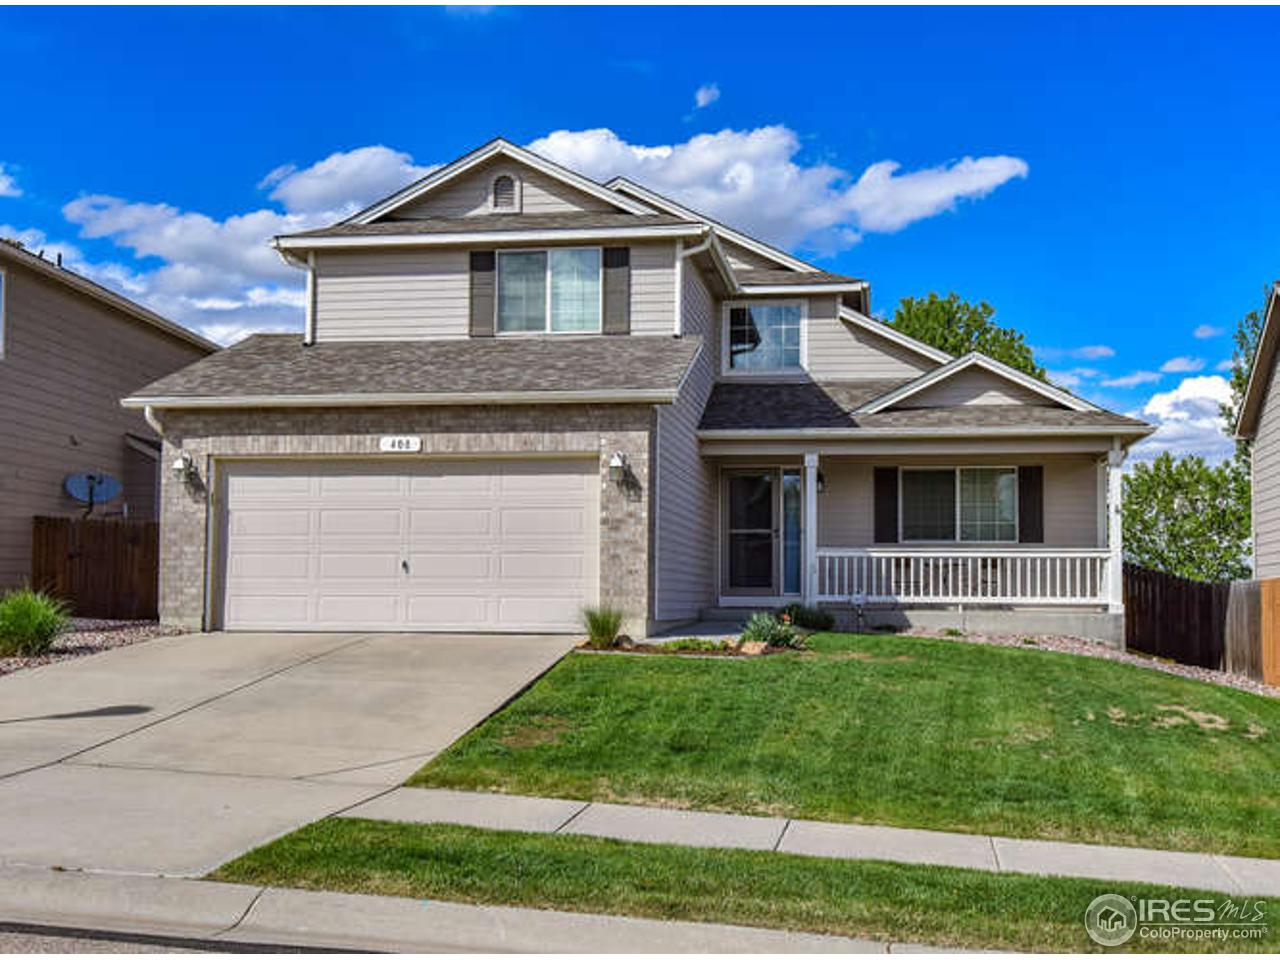 408 Peyton Dr, Fort Collins, CO 80525